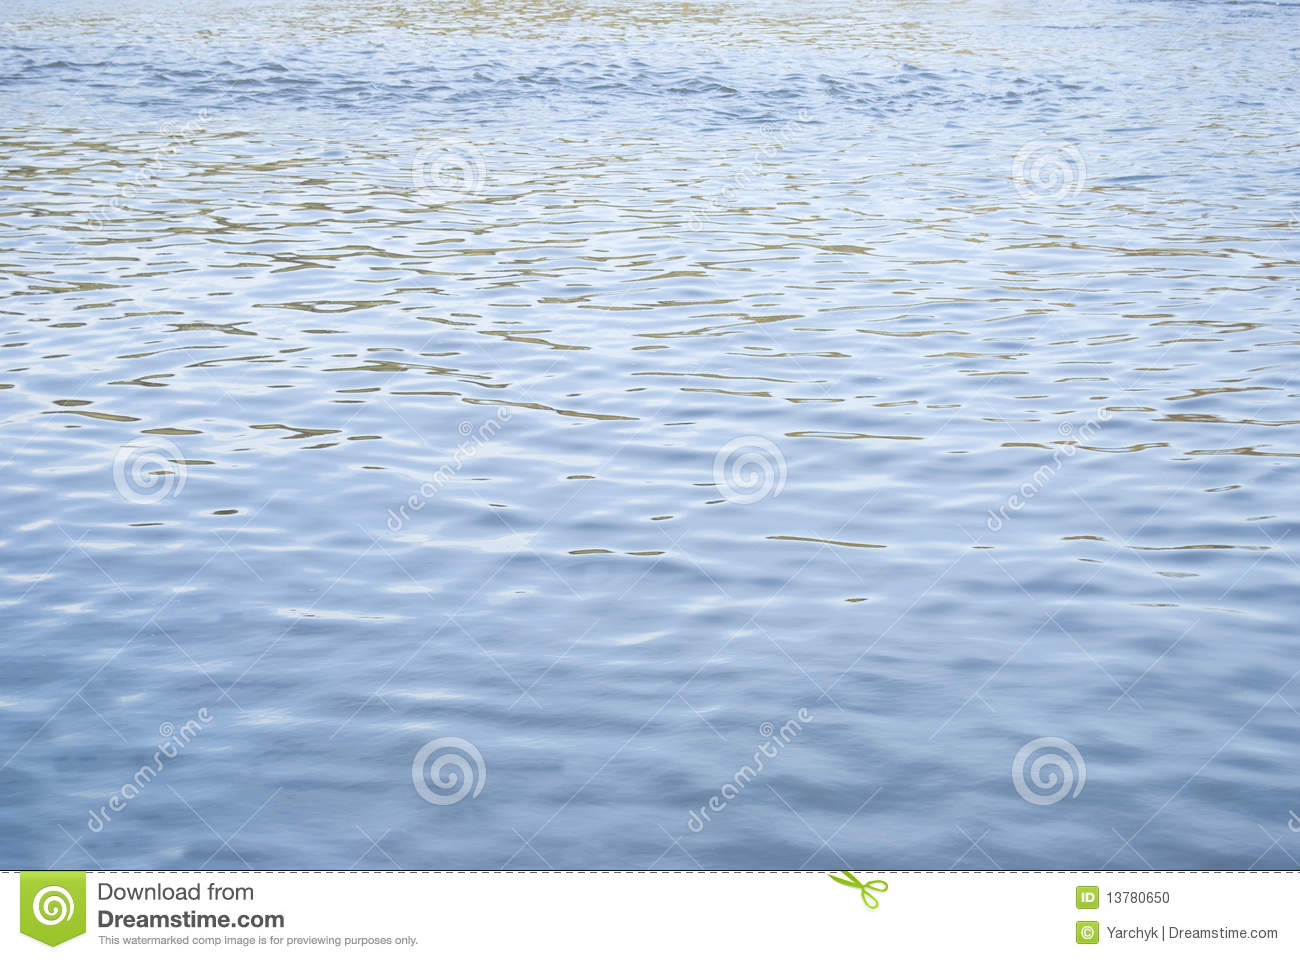 water surface wallpaper - photo #38